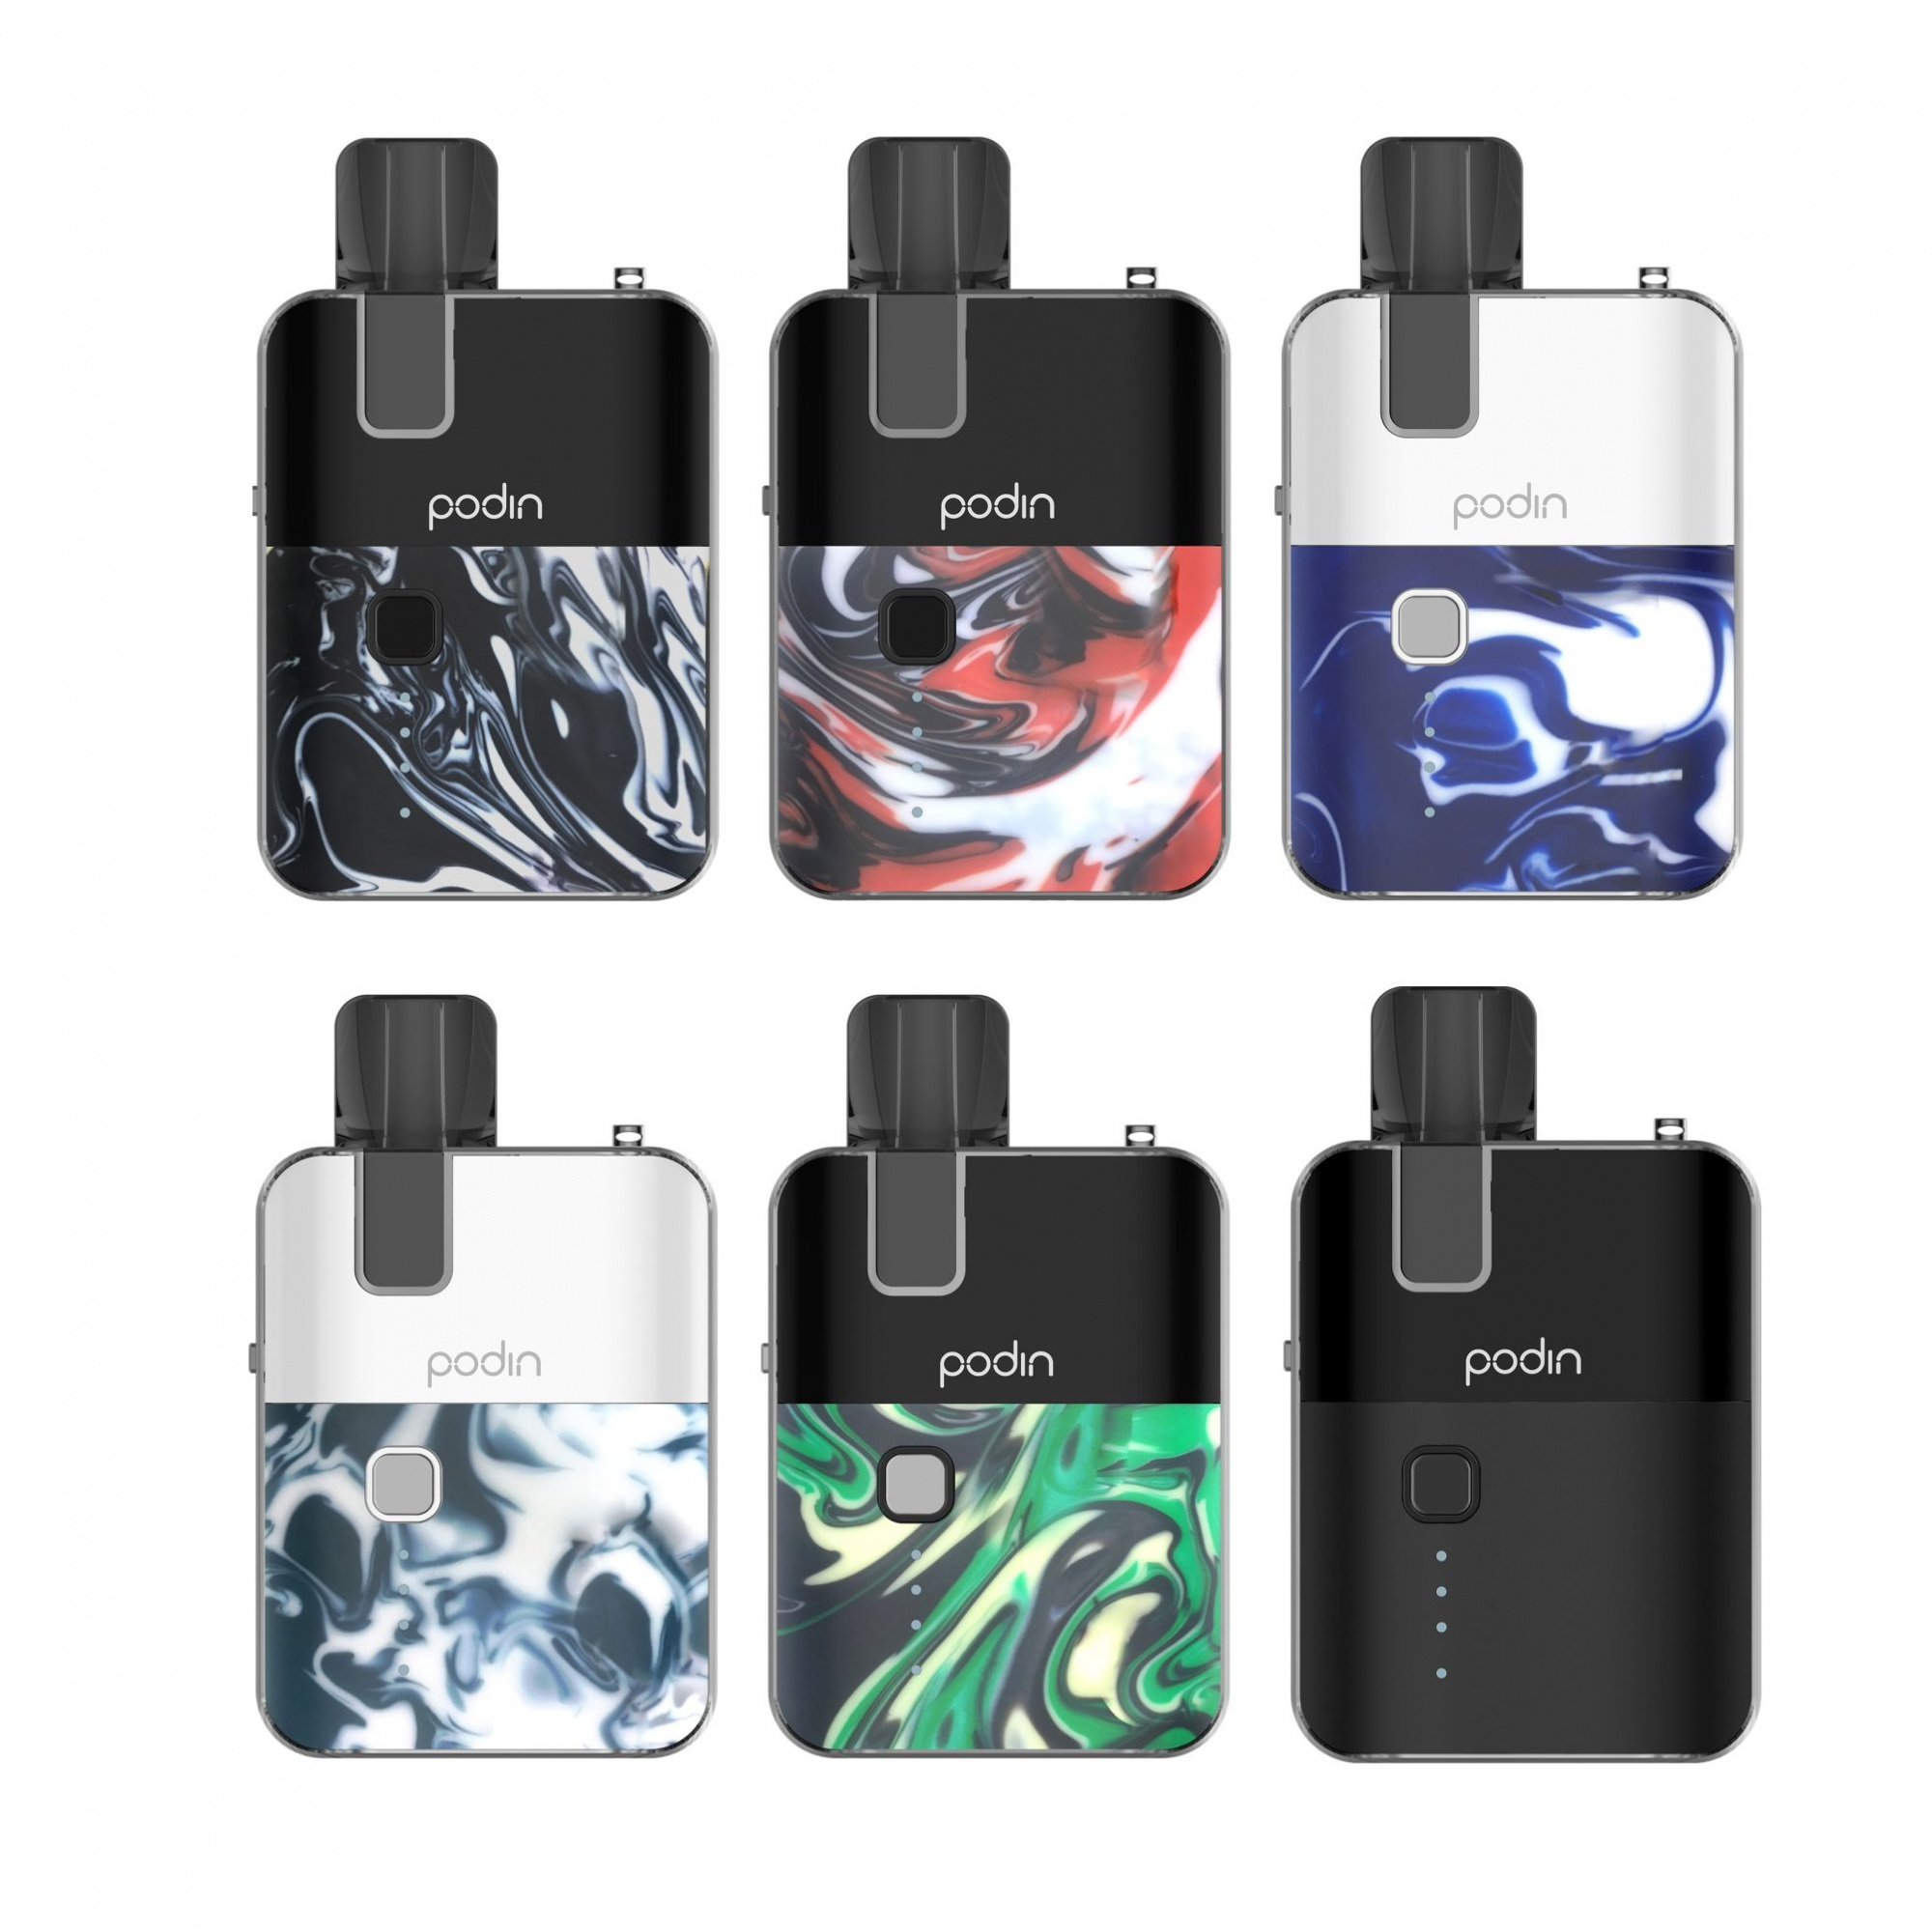 The Innokin Podin Mini Mod Pod